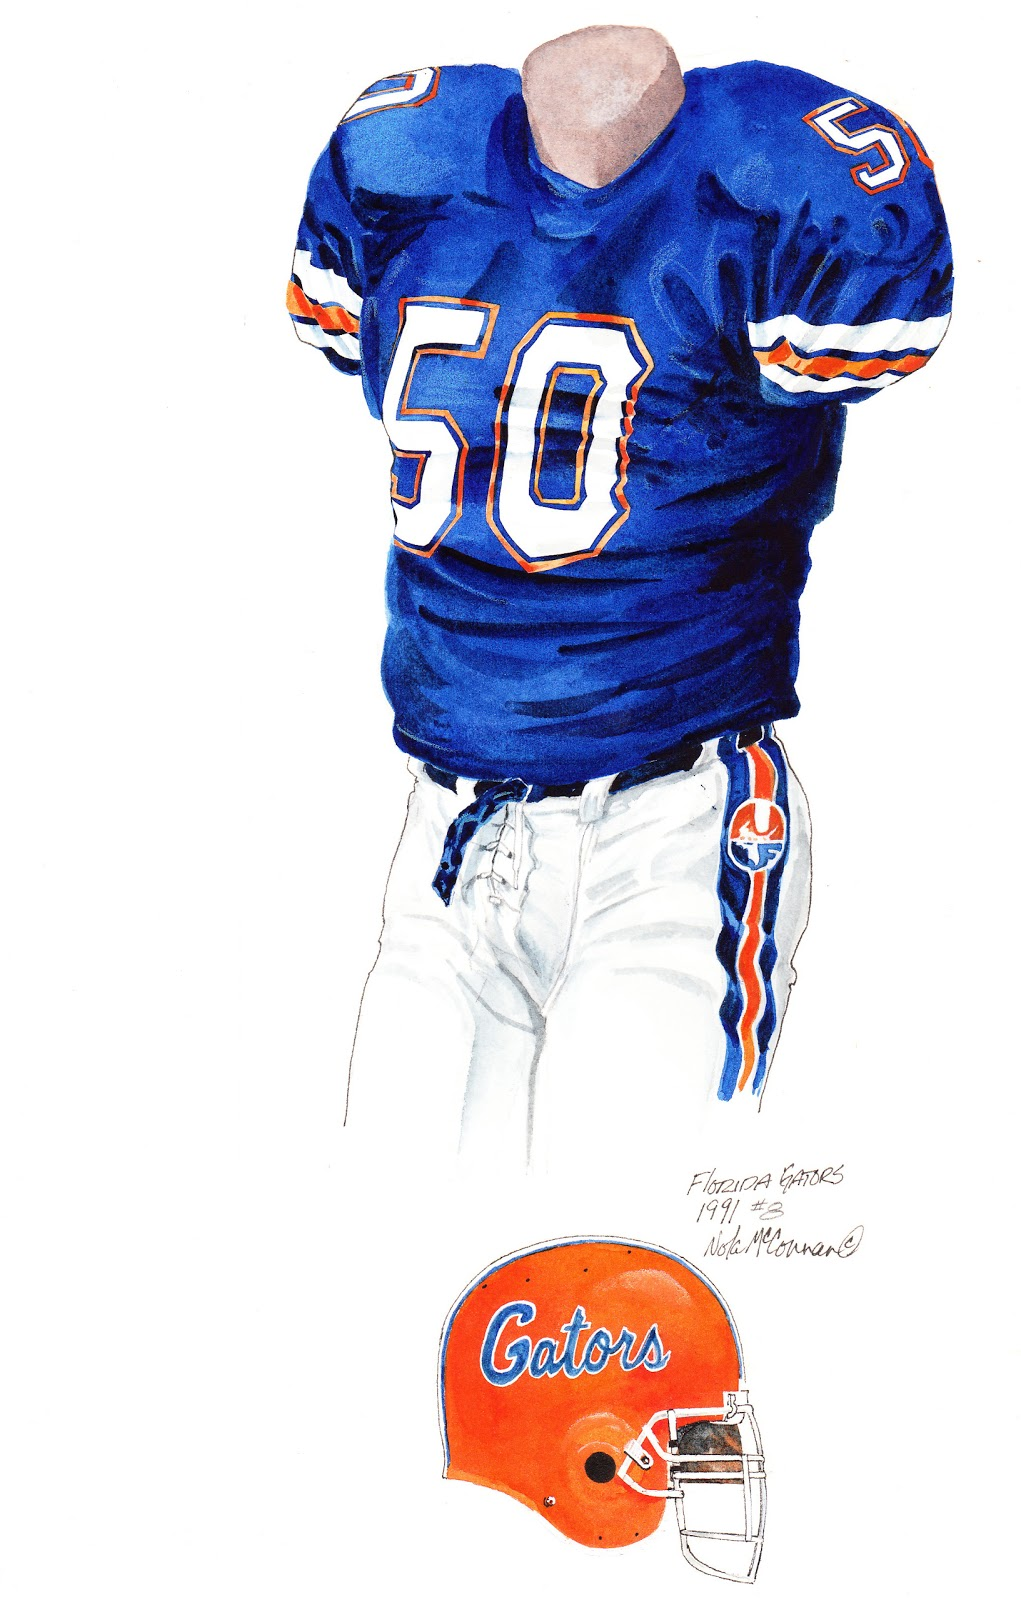 8cf192e20 1991 University of Florida Gators football uniform original art for sale